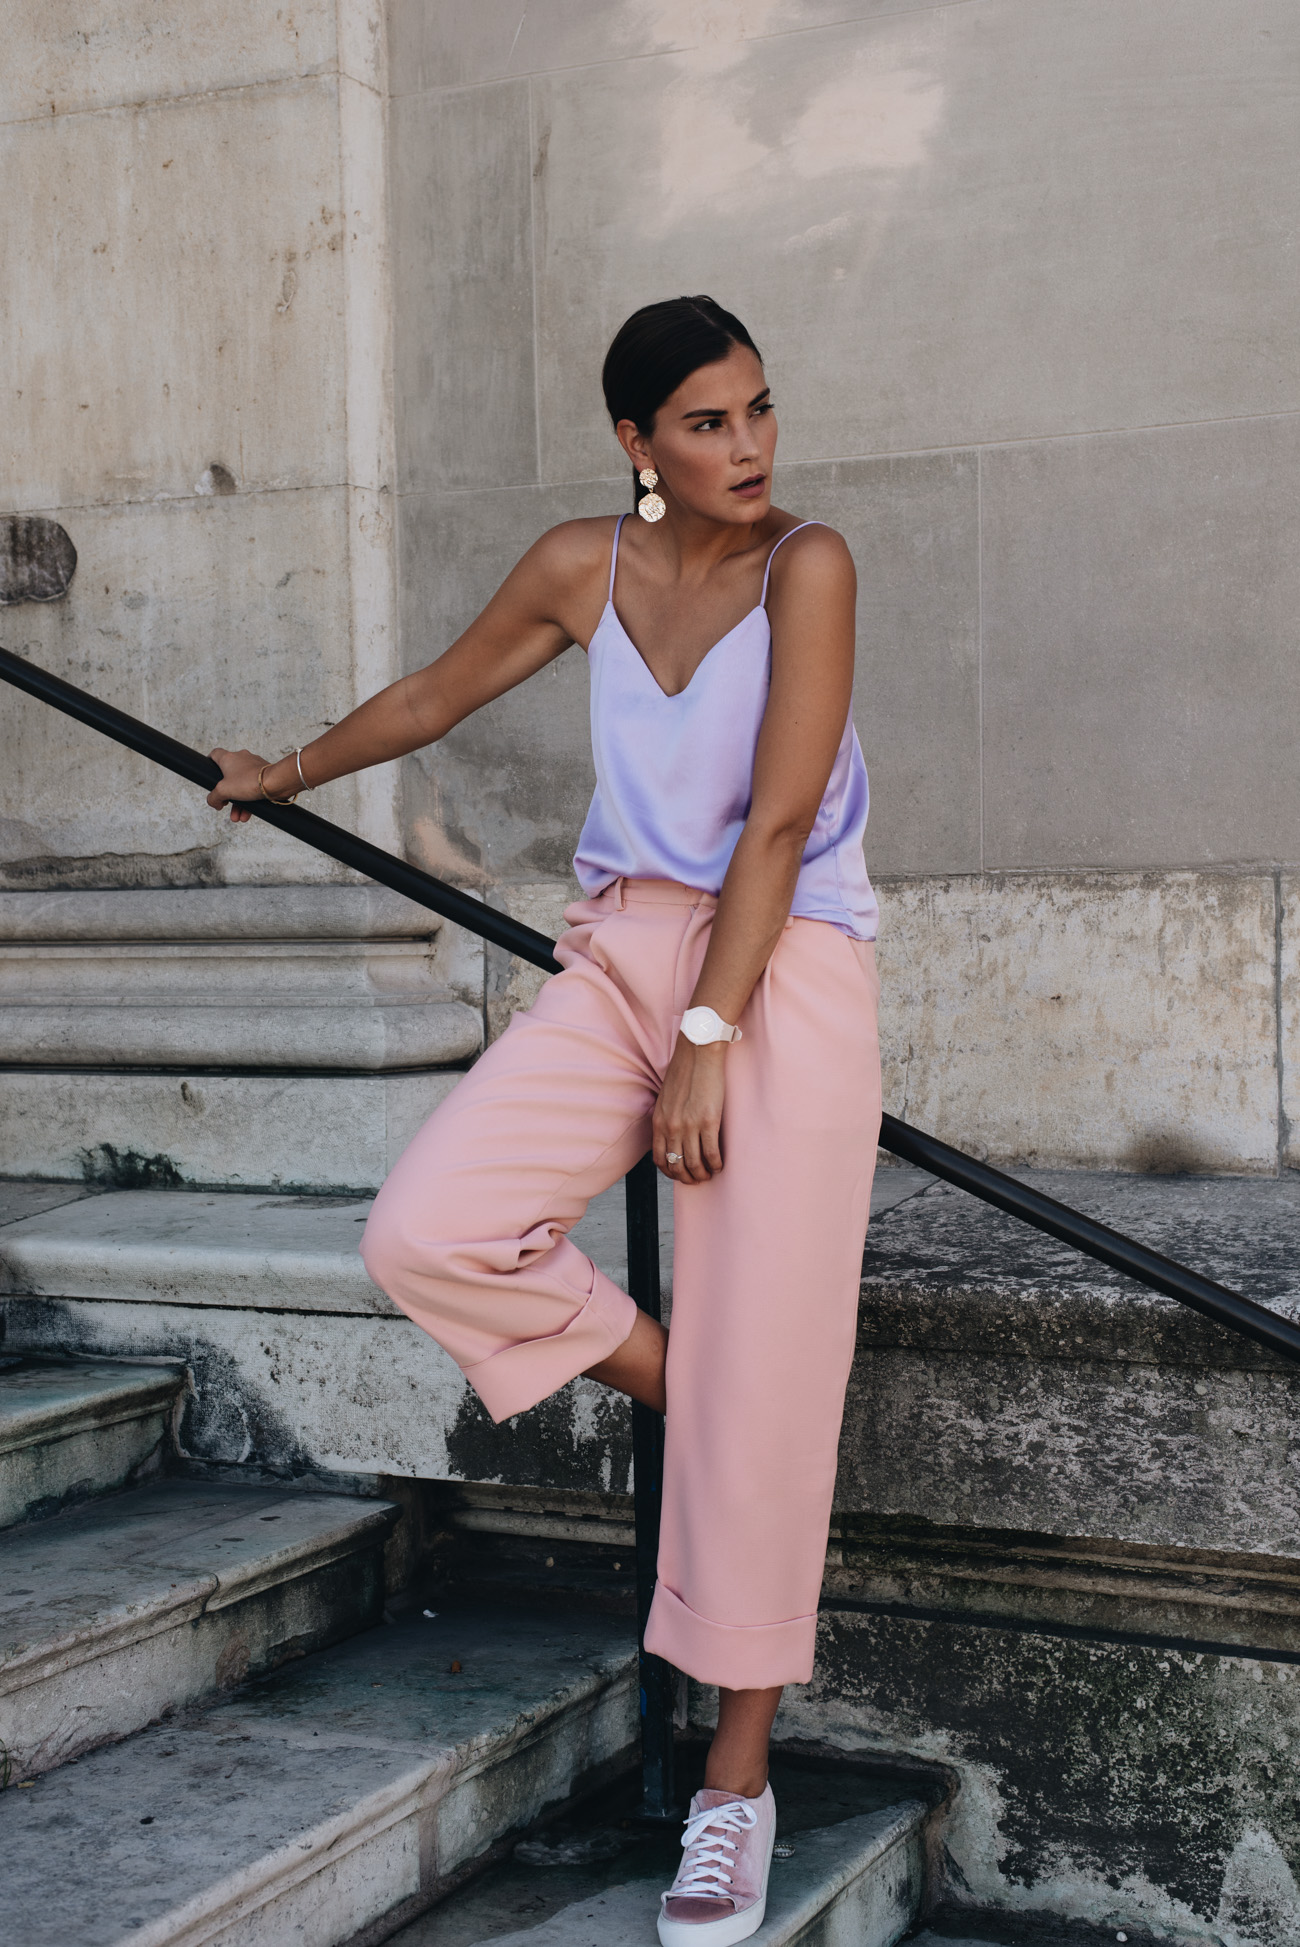 sommer-outfit-mit-pastell-farben-rosa-culotte-samt-sneaker-amber-be-fashiioncarpet-nina-schwichtenberg